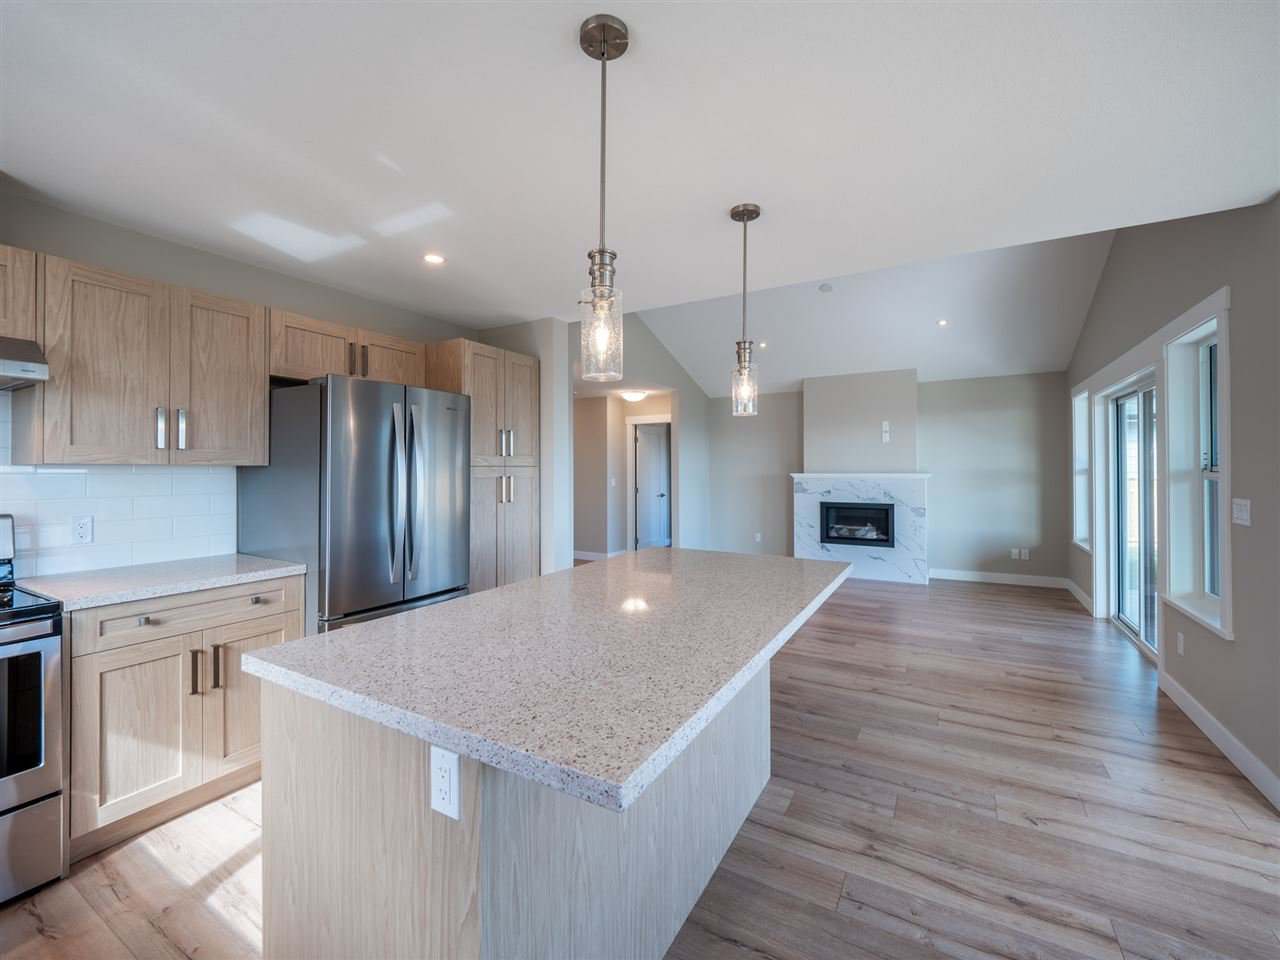 """Photo 11: Photos: 5634 KINGBIRD Crescent in Sechelt: Sechelt District House for sale in """"SilverStone Heights Phase2"""" (Sunshine Coast)  : MLS®# R2466073"""